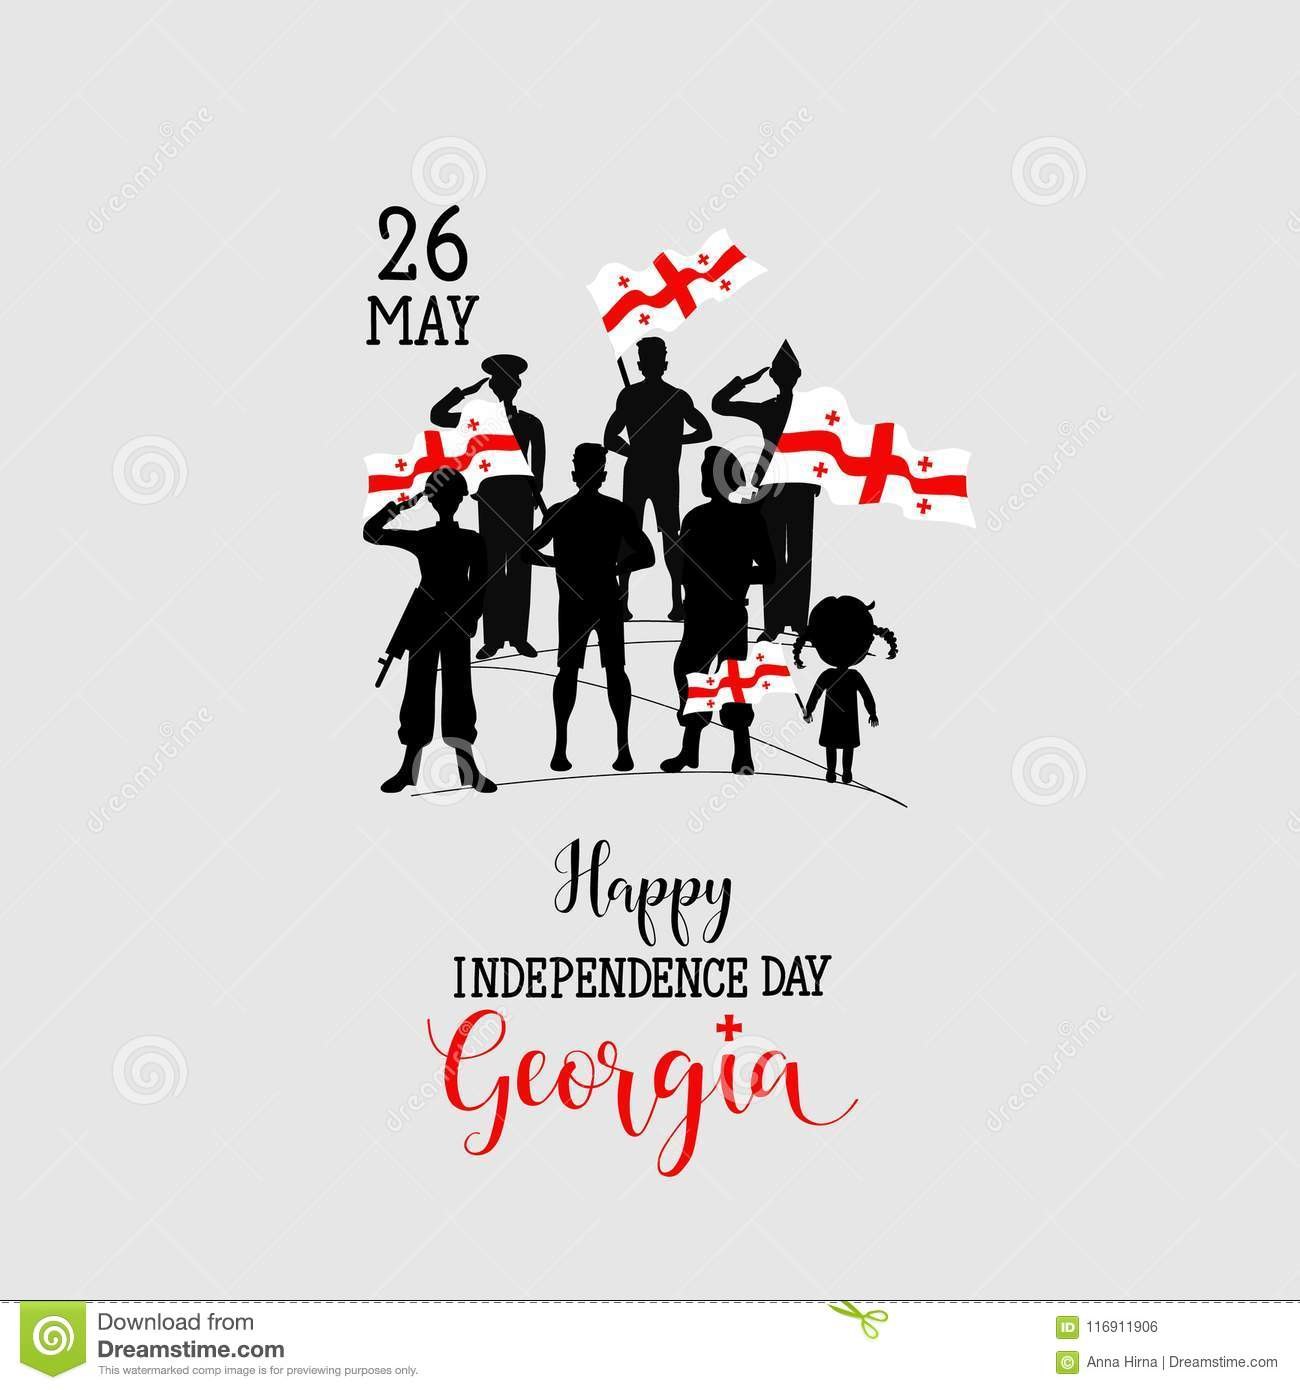 Happy Georgia Independence Day Graphic Design Element Stock